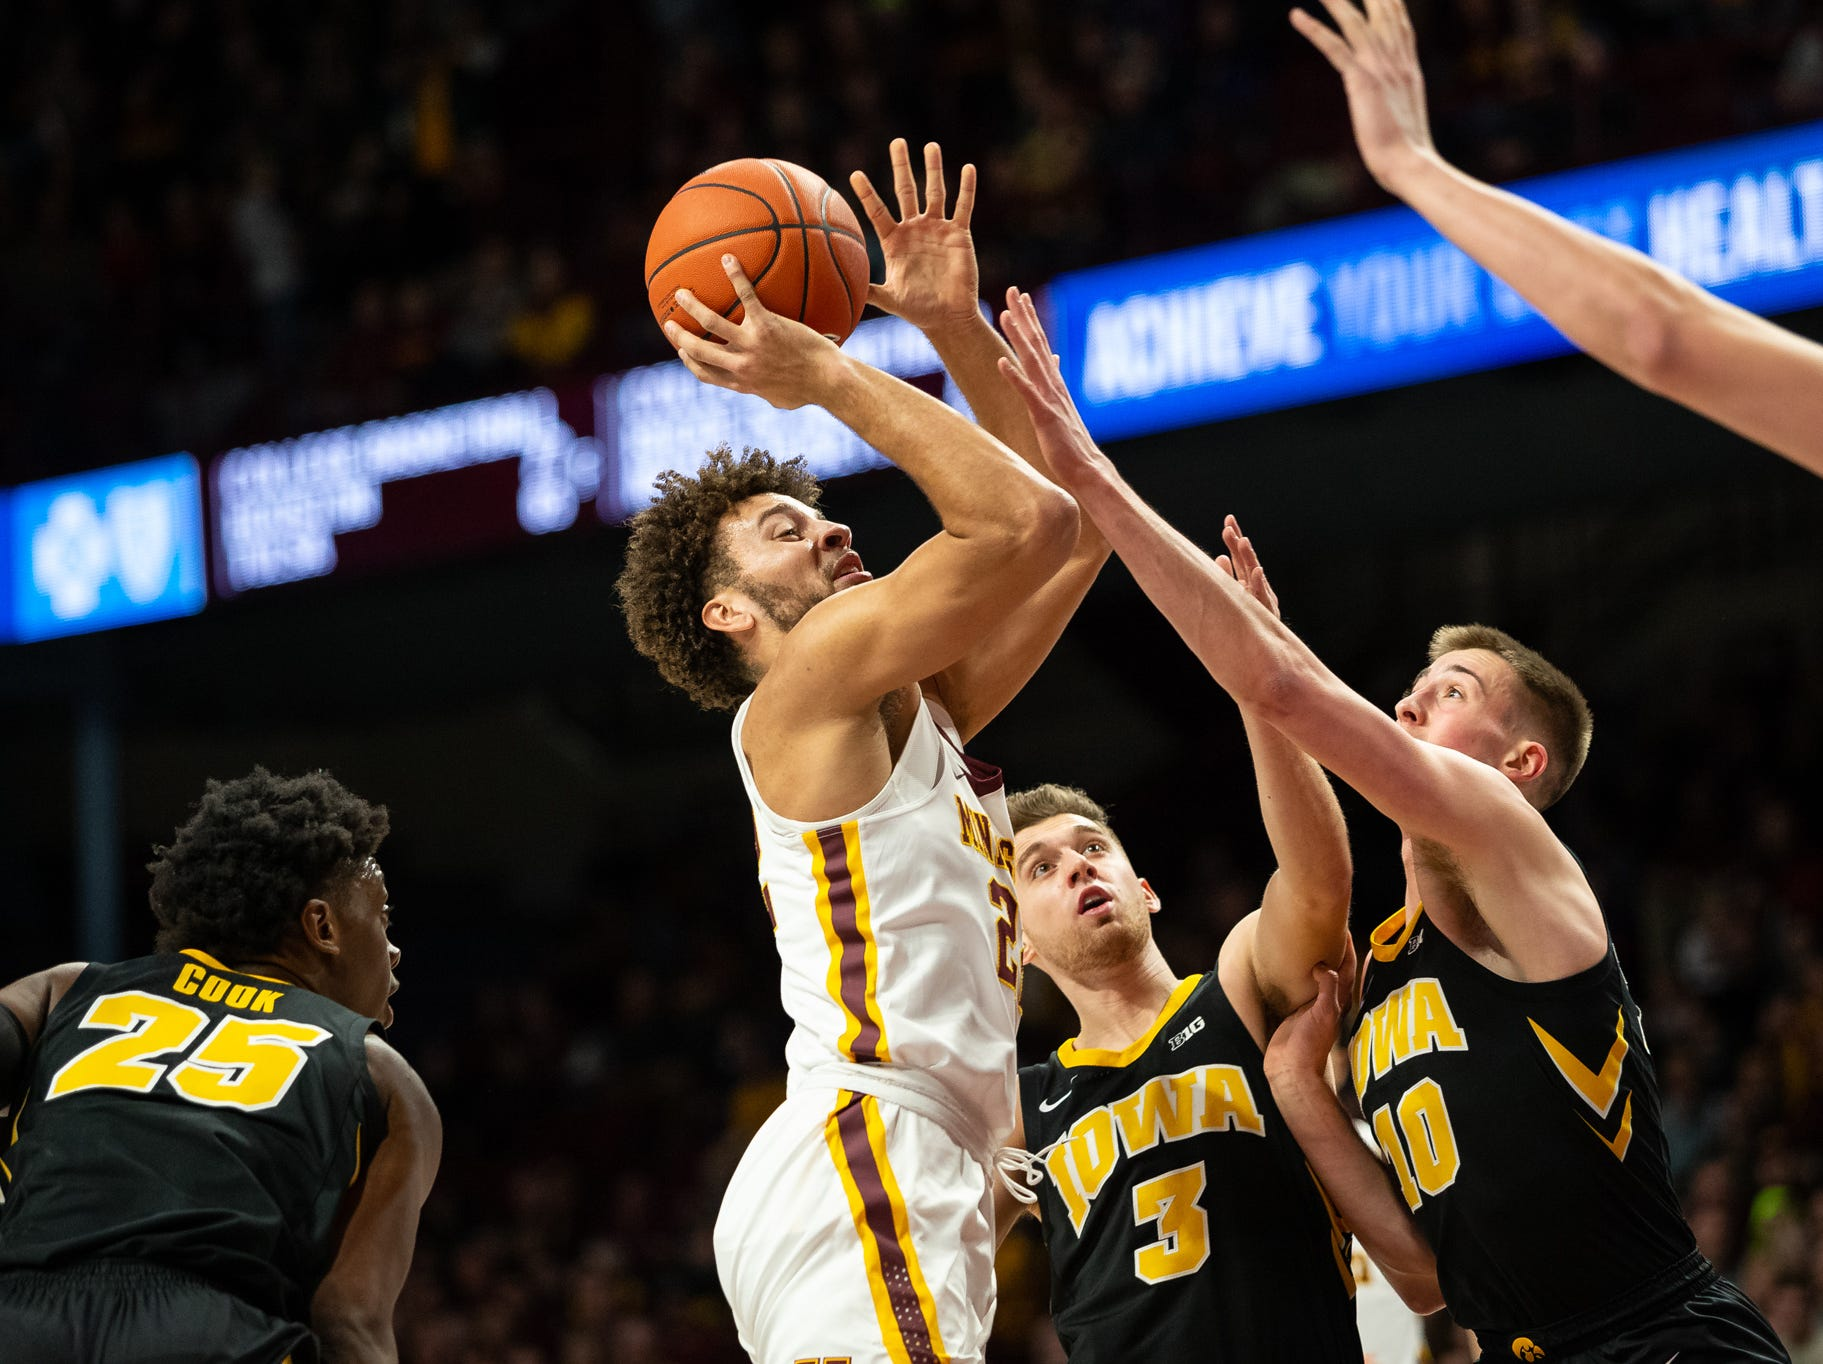 Jan 27, 2019; Minneapolis, MN, USA; Minnesota Gophers guard Gabe Kalscheur (22) shoots the ball over Iowa Hawkeyes guard Joe Wieskamp (10) and guard Jordan Bohannon (3) during the first half at Williams Arena. Mandatory Credit: Harrison Barden-USA TODAY Sports